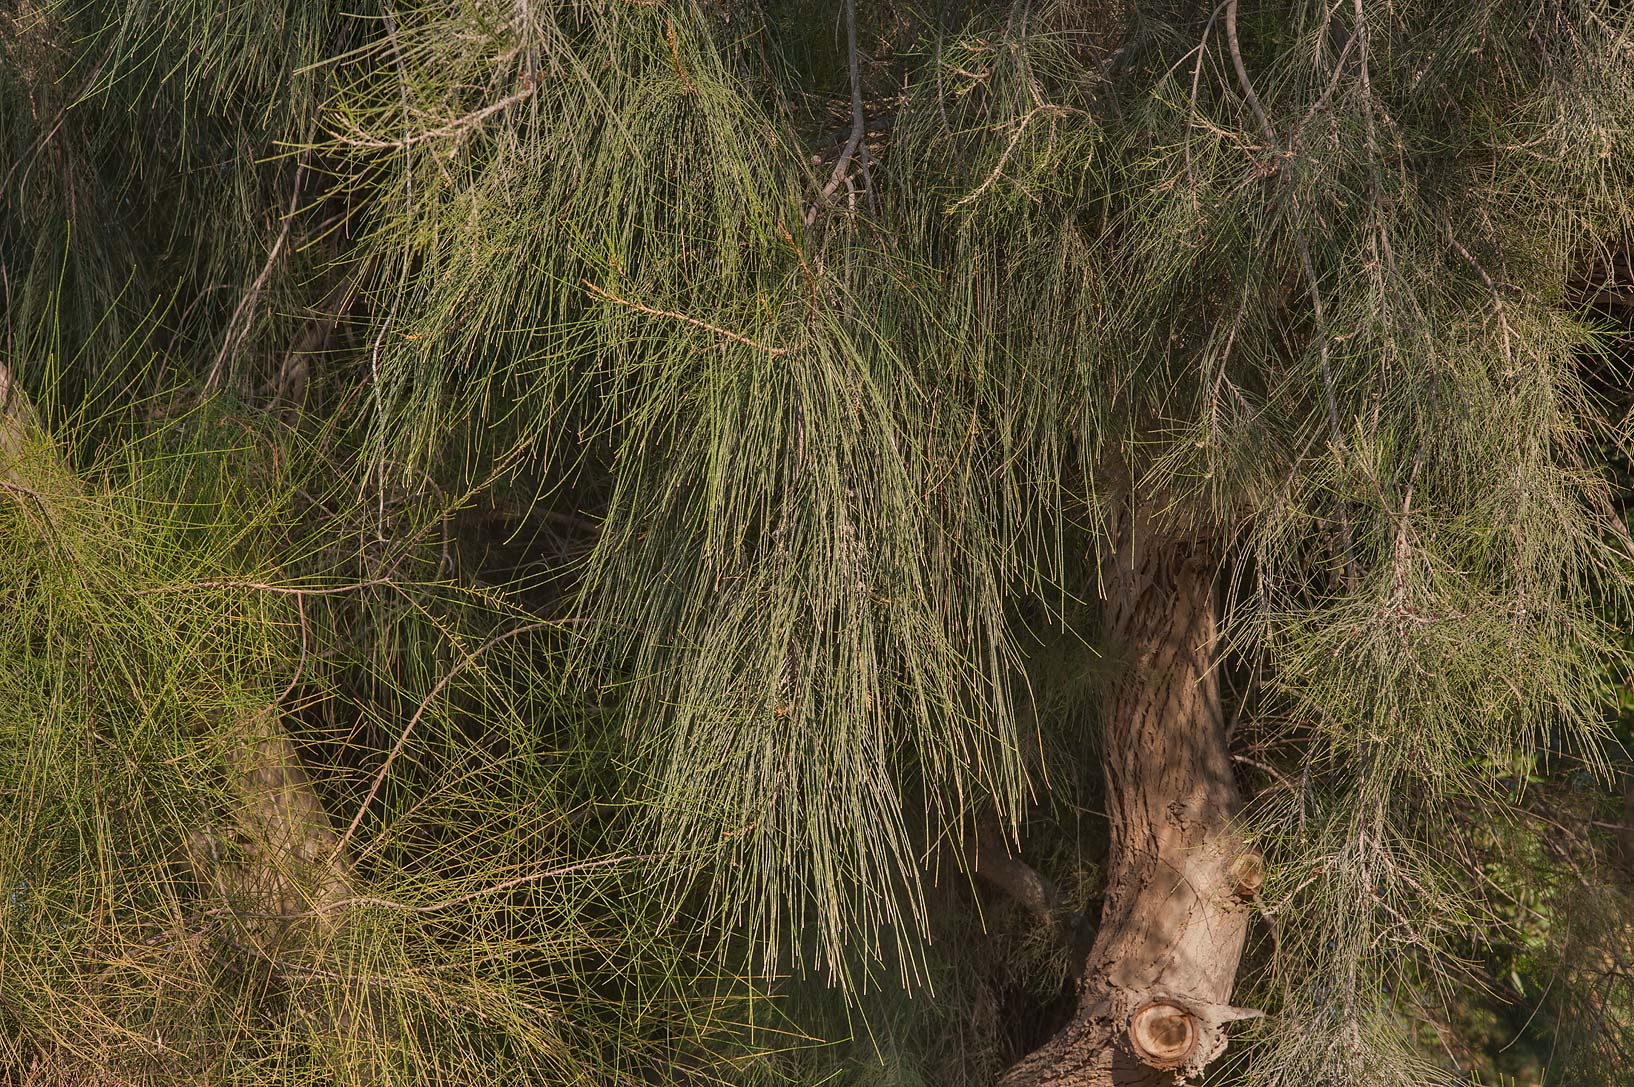 Trunk and fine greyish green needle-like foliage...City Park. Ruwais, Northern Qatar